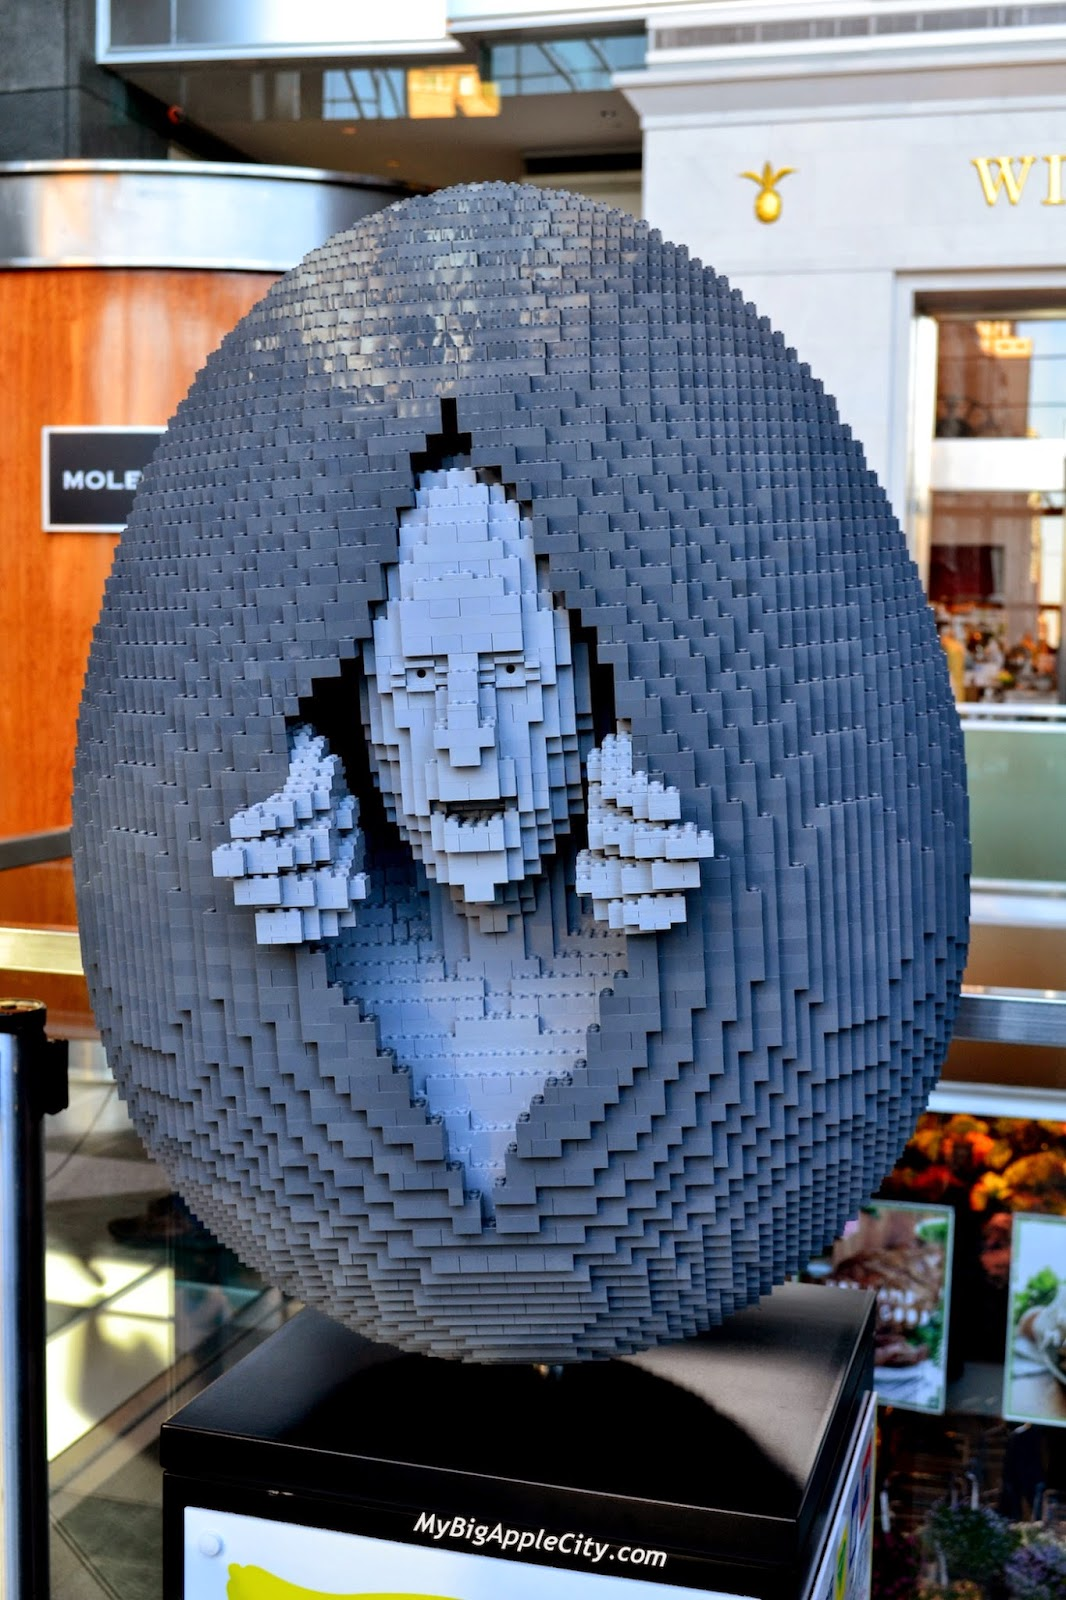 lego-egg-hunt-nyc-easter